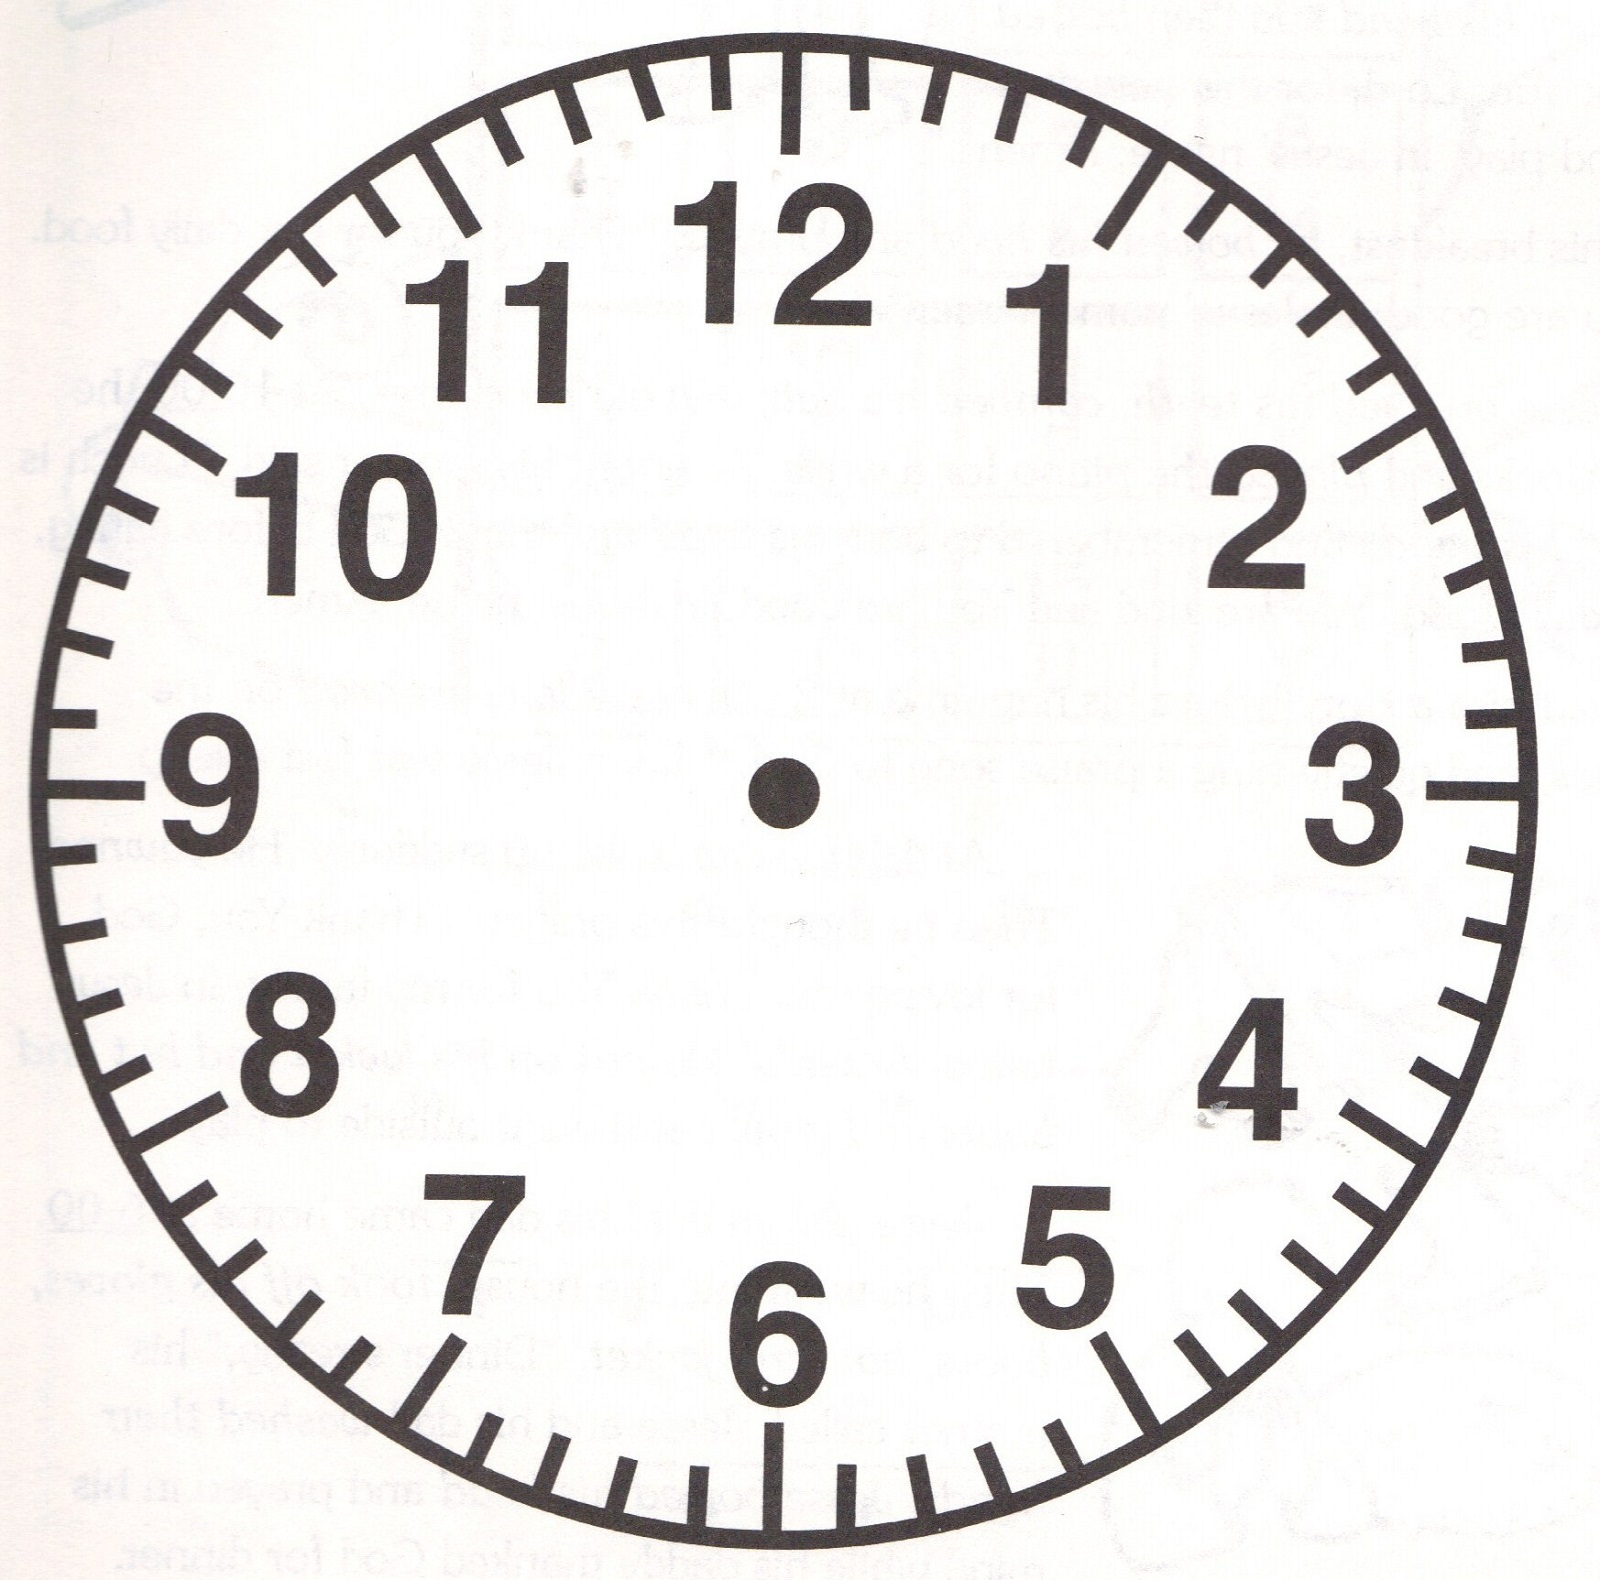 photograph regarding Printable Clock Face Template identified as Blank Clock Faces Templates Game Shelter